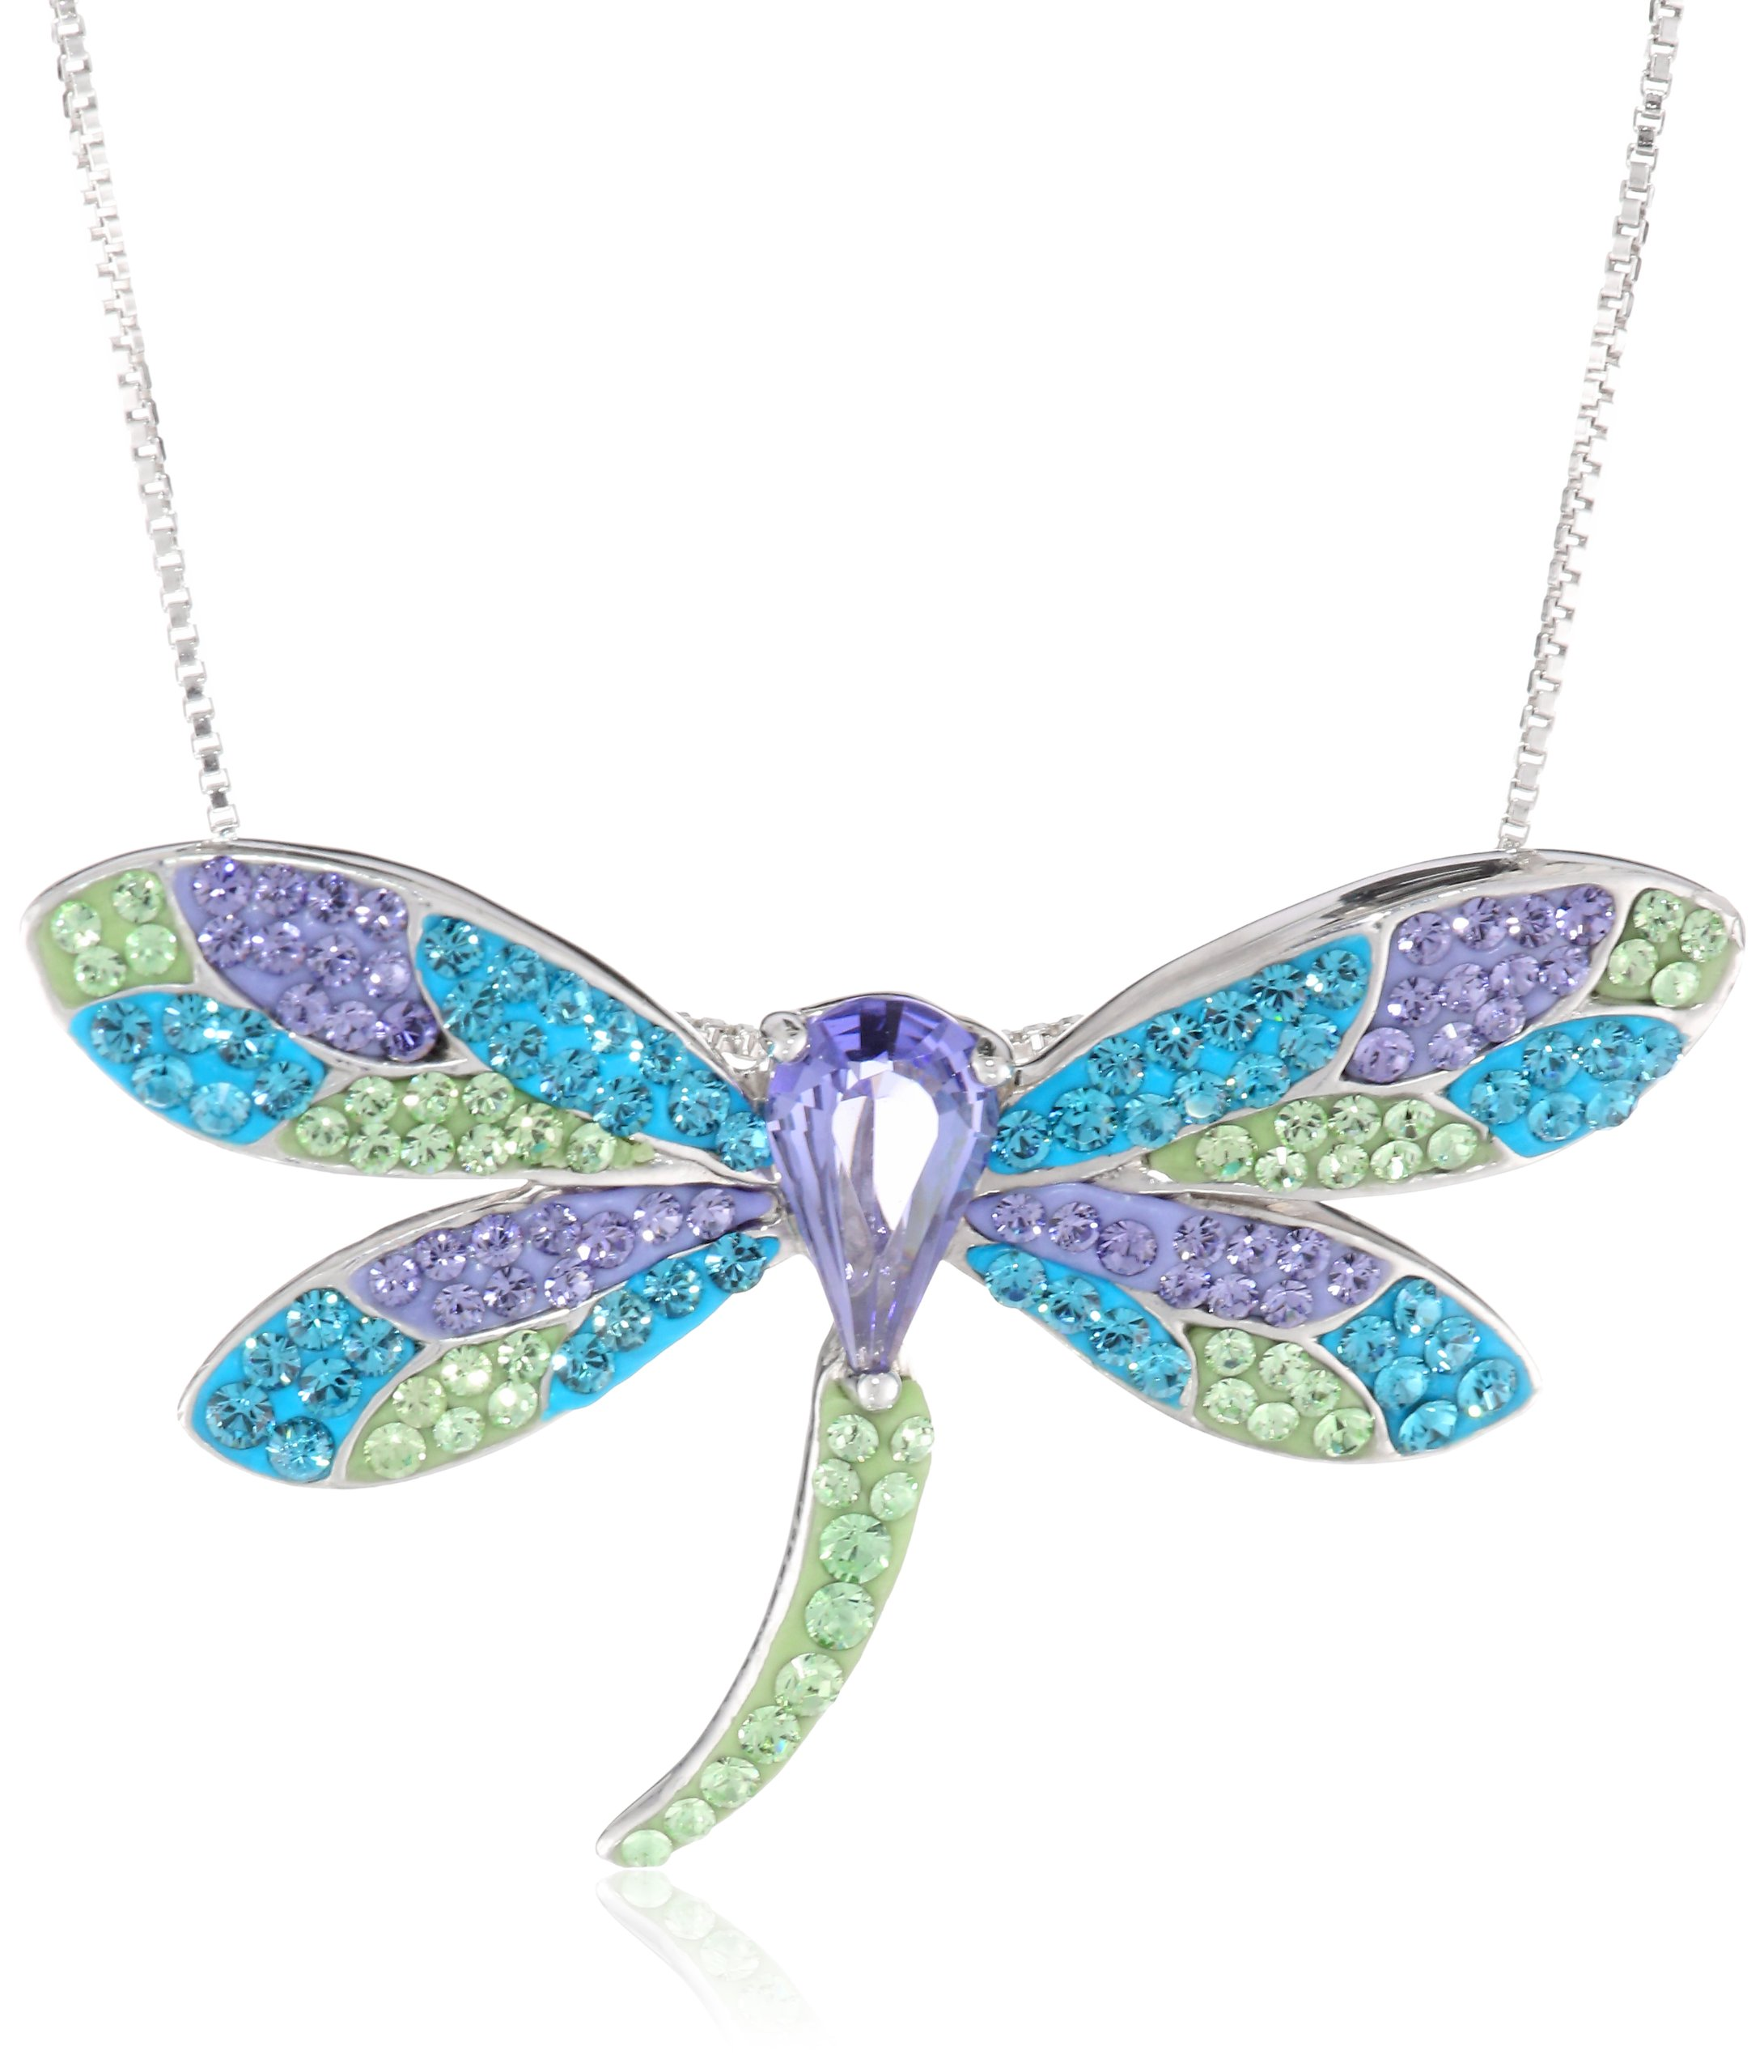 Carnevale Sterling Silver Dragonfly Necklace with Swarovski Elements  image